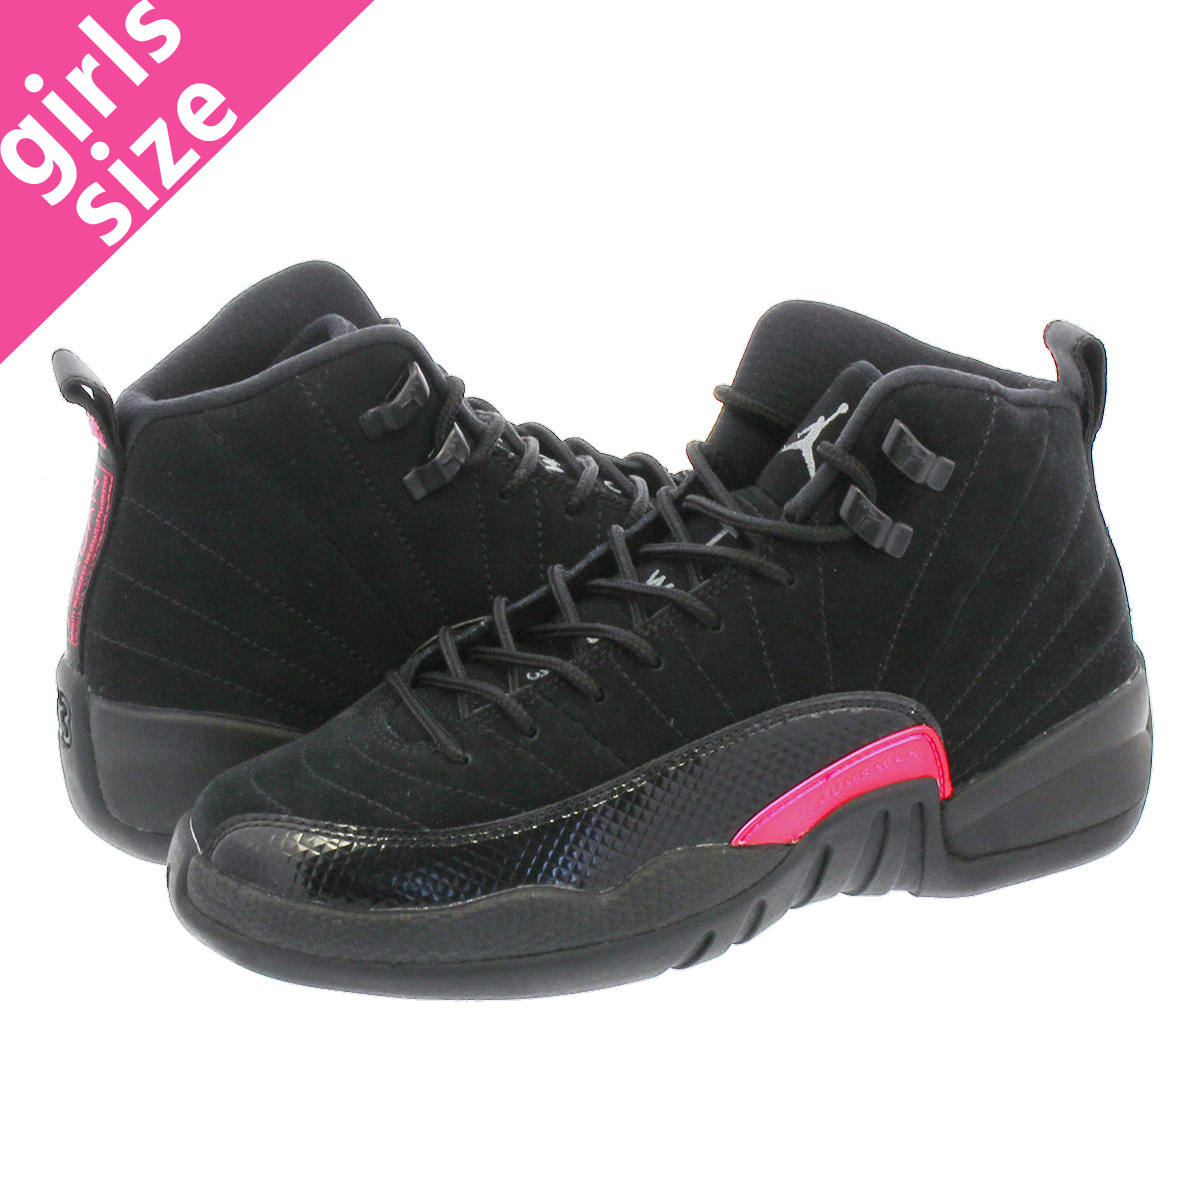 hot sale online 71163 ec170 NIKE AIR JORDAN 12 RETRO GG Nike Air Jordan 12 nostalgic GG BLACK/DARK  GREY/RUSH PINK 510,815-006